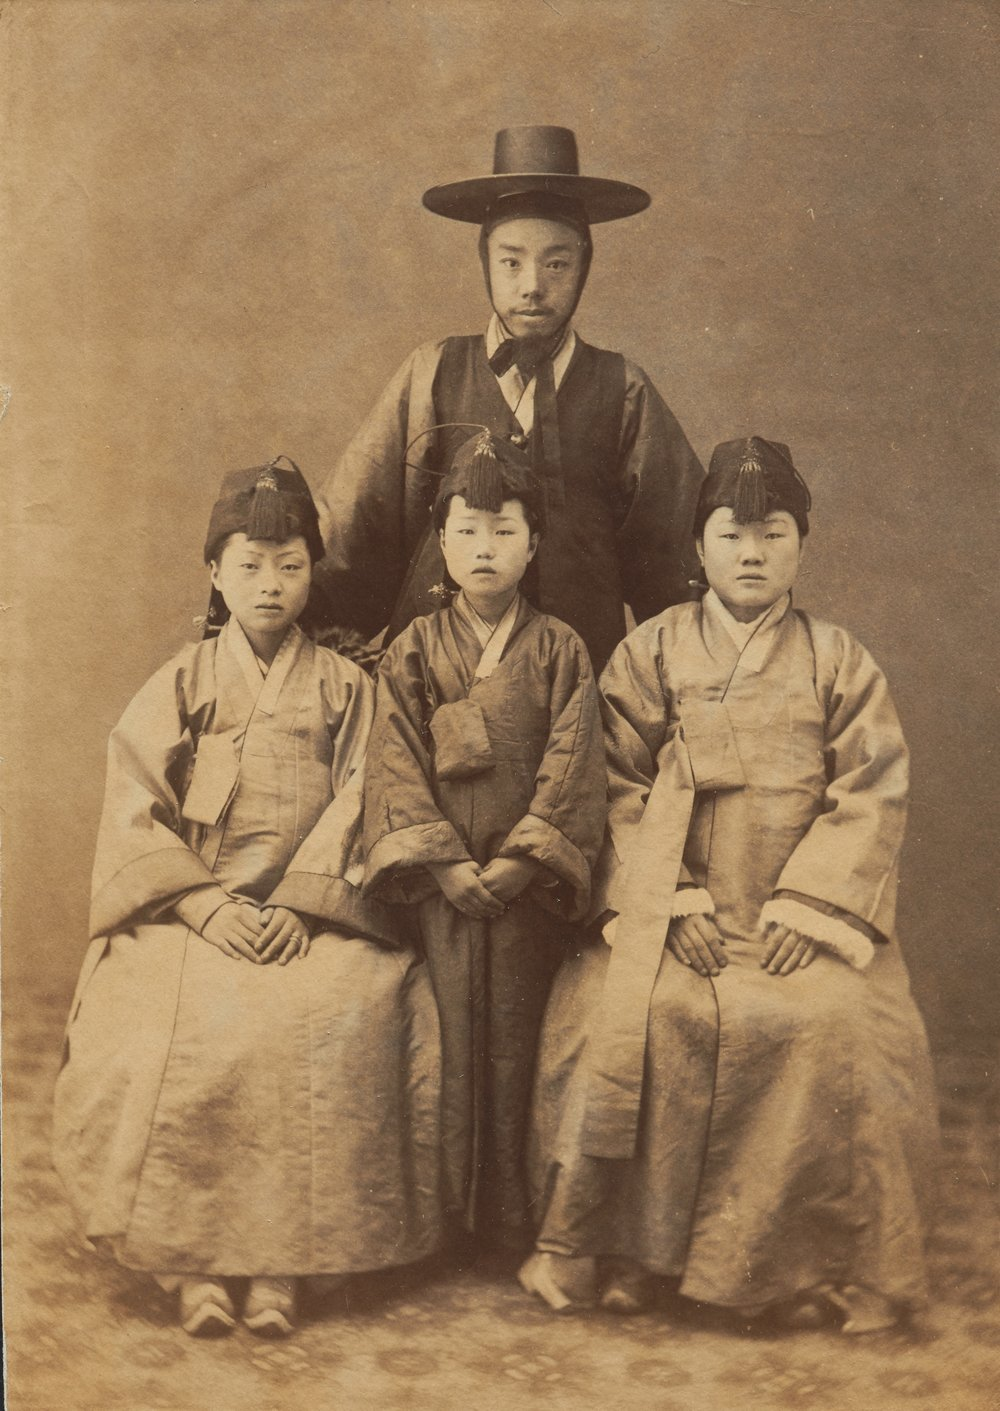 Korean Man and Three Girls, late 19th century, albumen print, Peabody Essex Museum